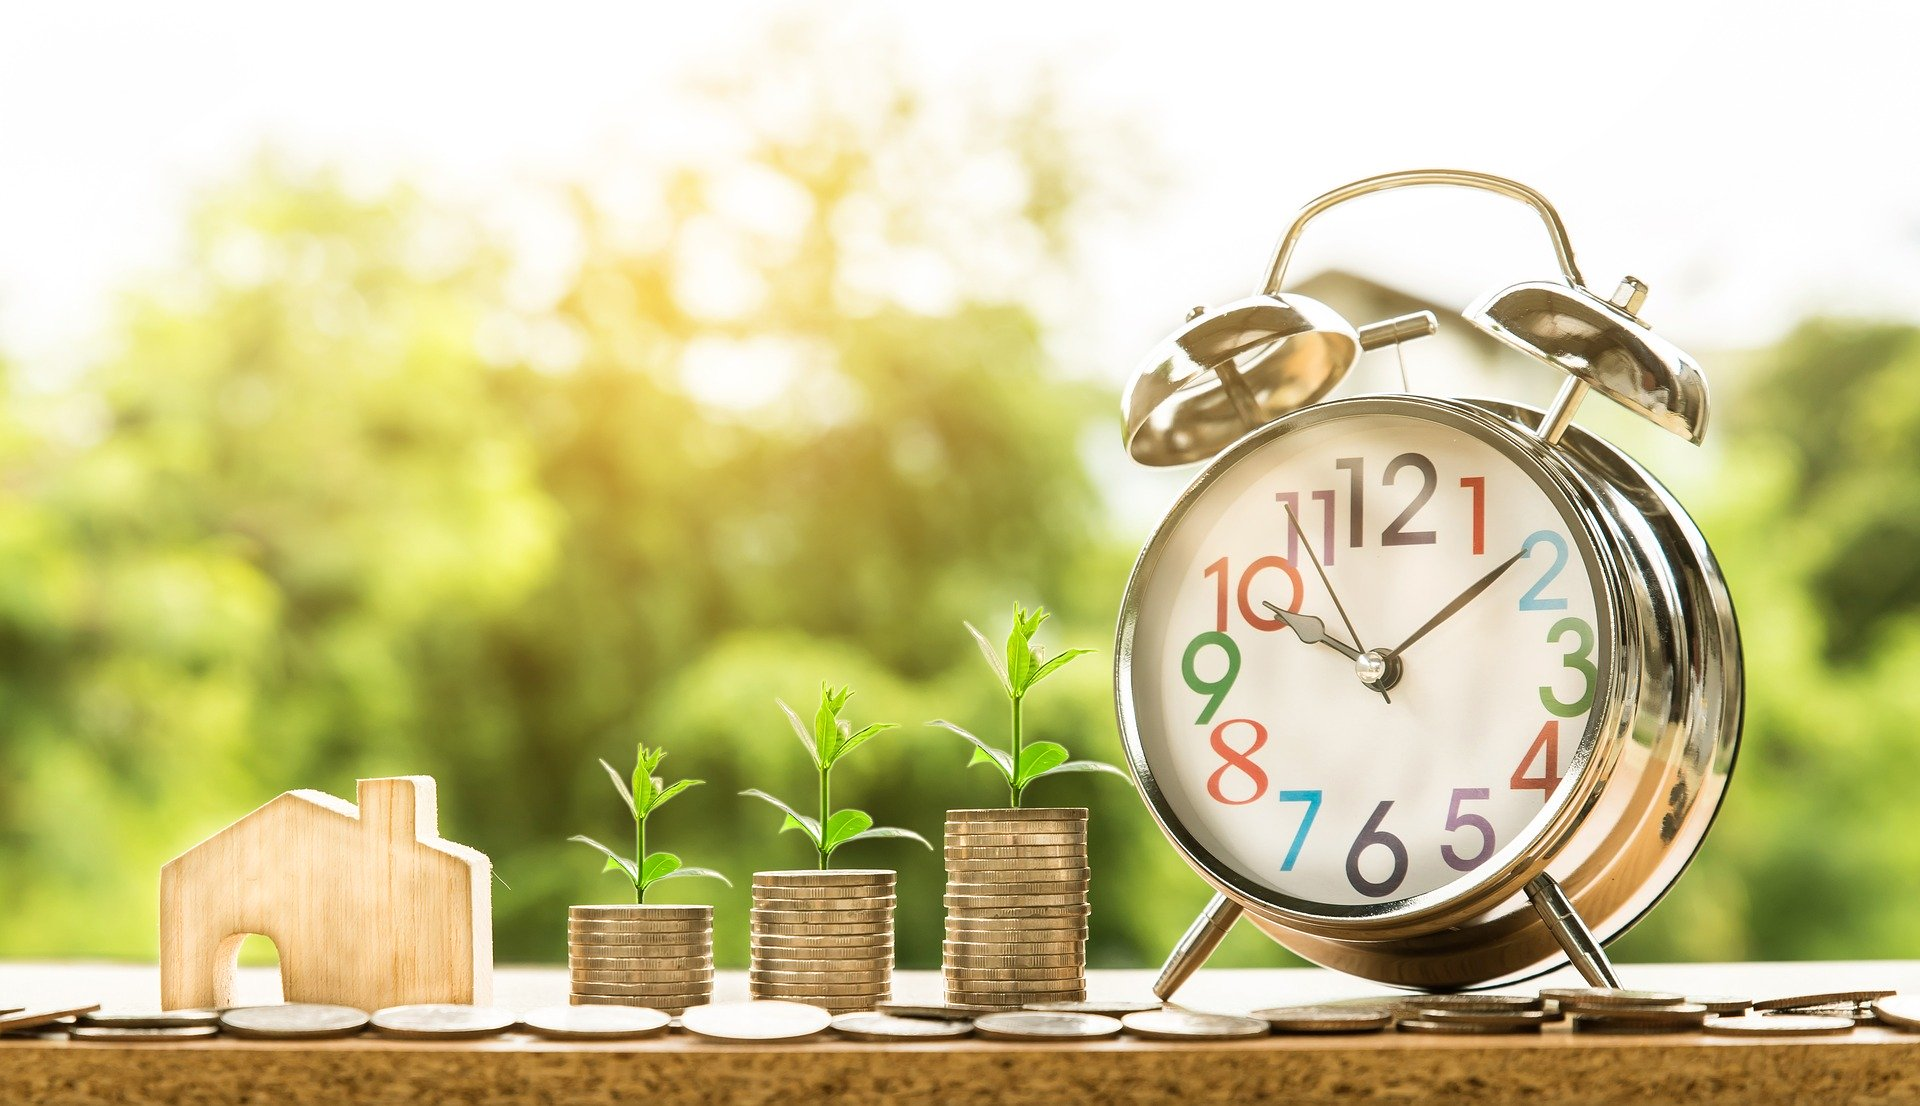 Is Property Investing more promising compared to other forms of investments?